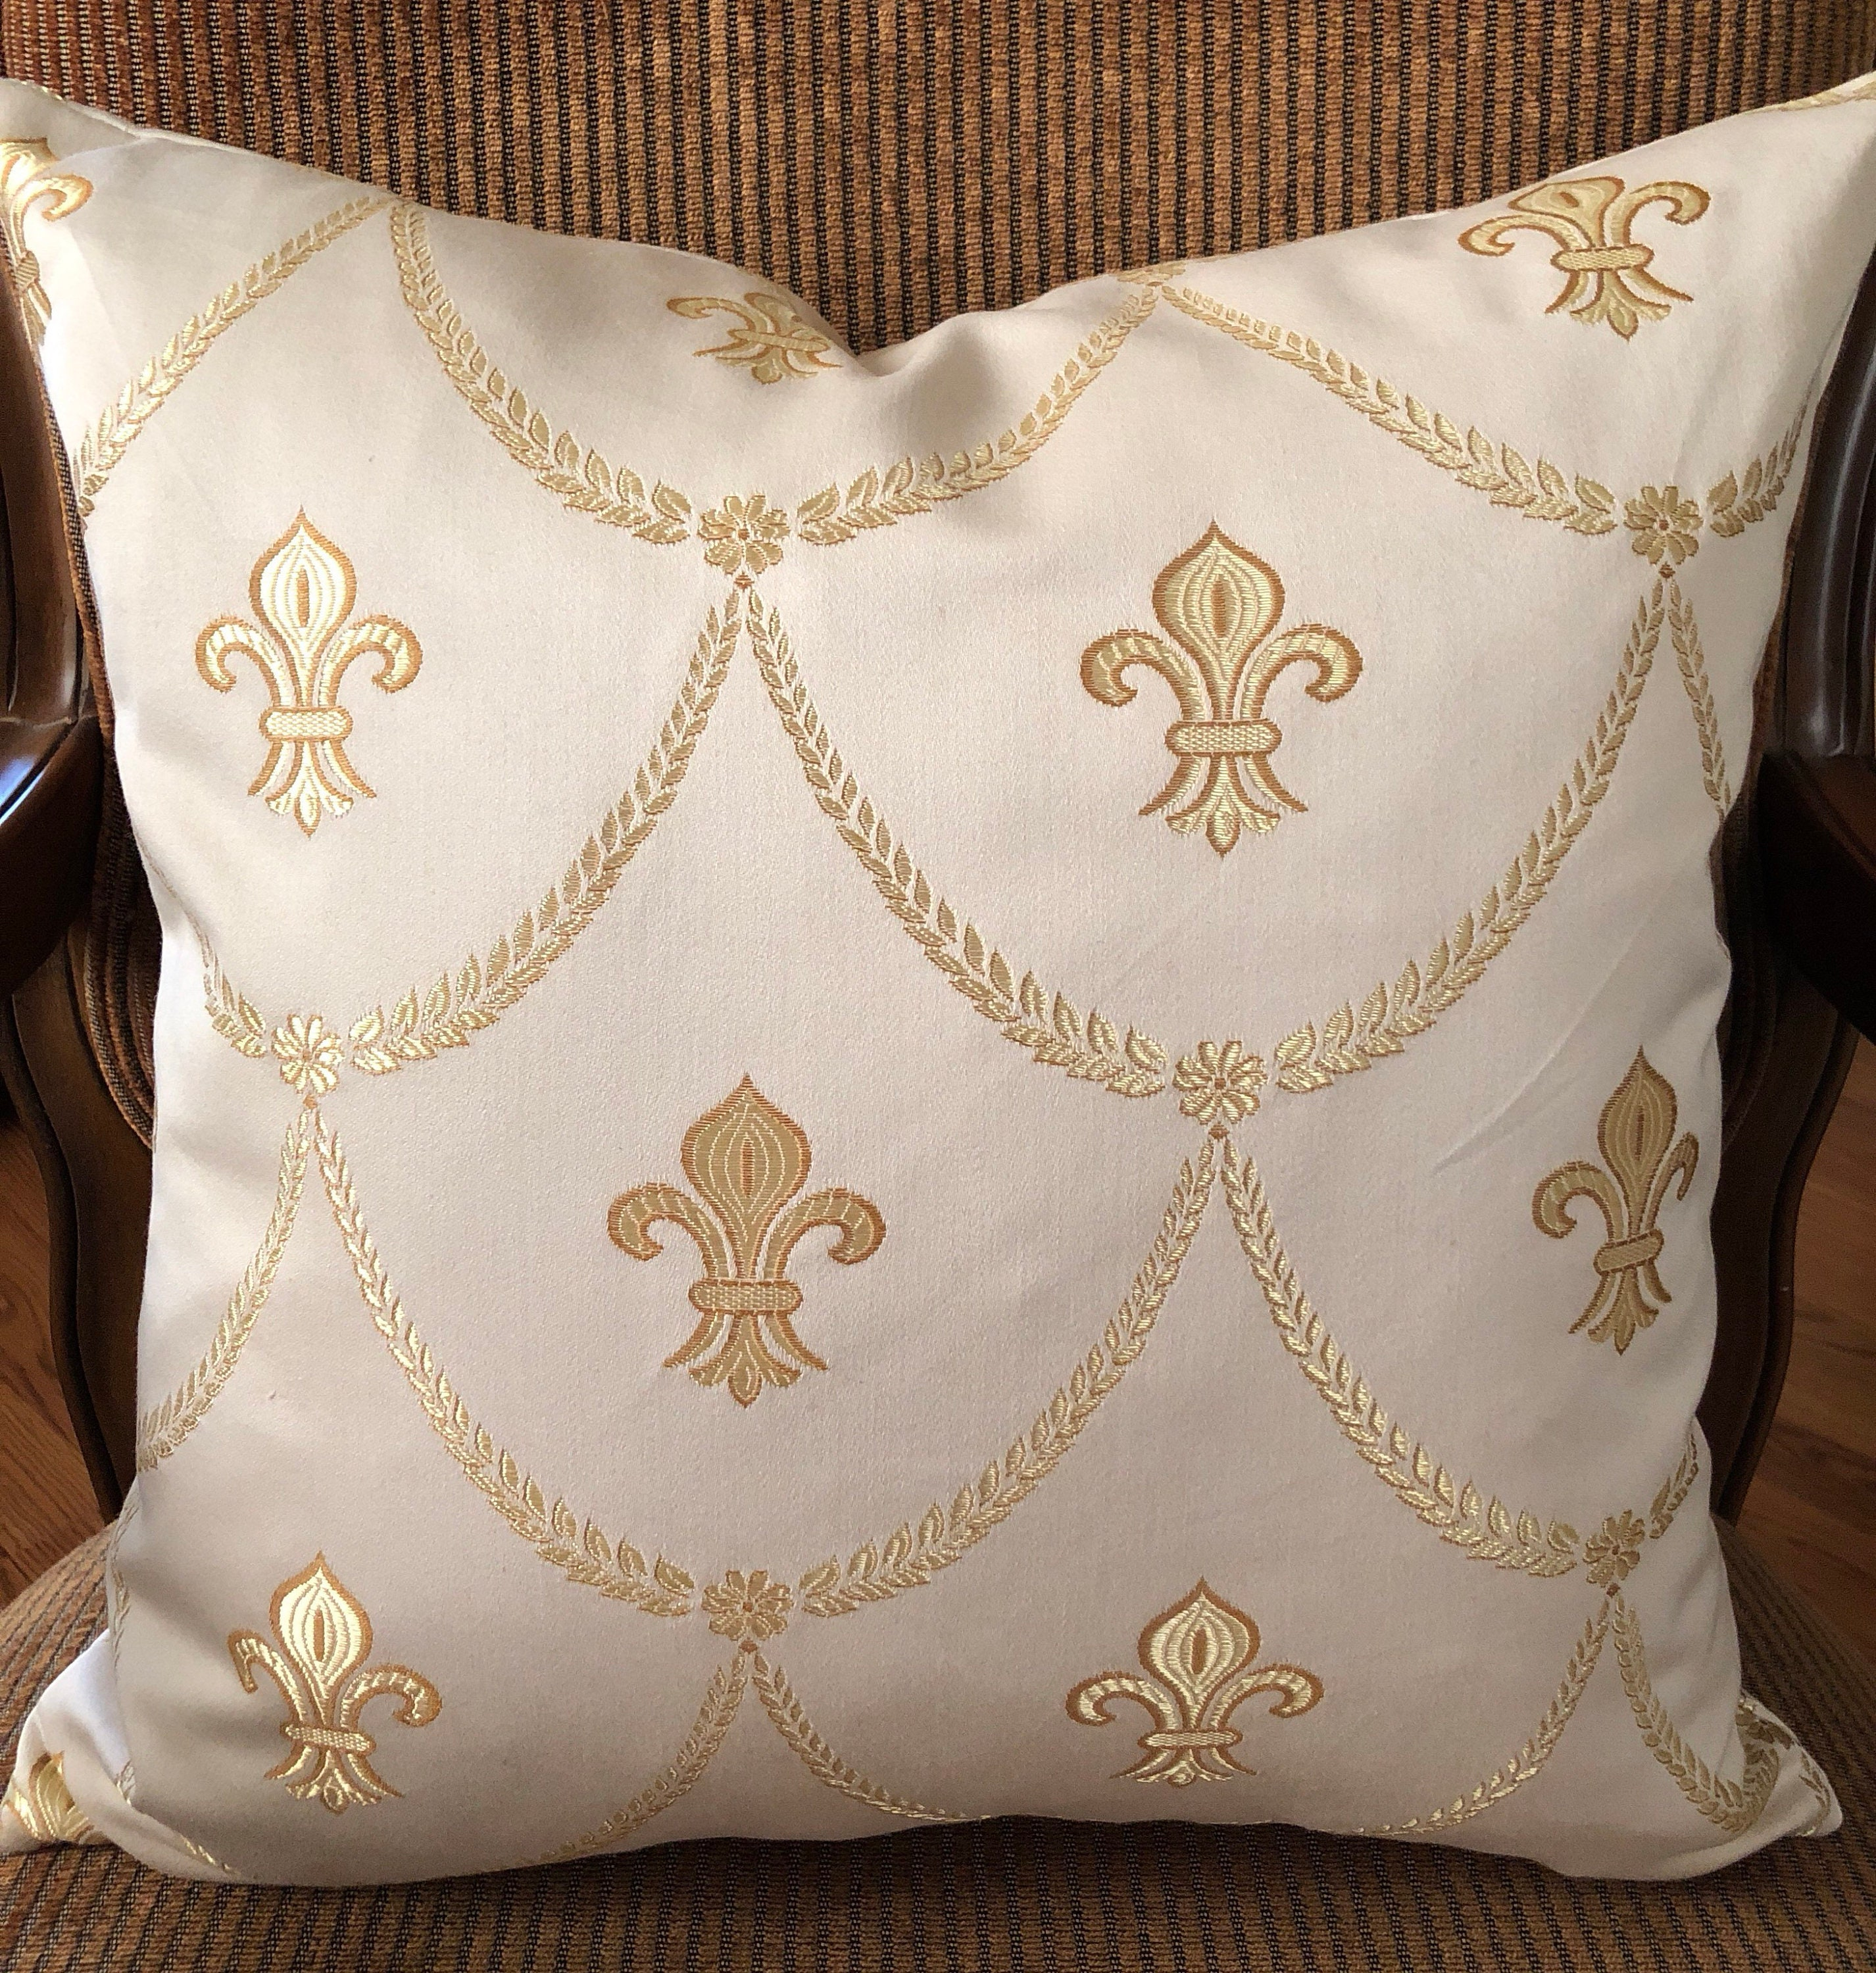 18 In Embroidered Fleur De Lis Pillow Cover